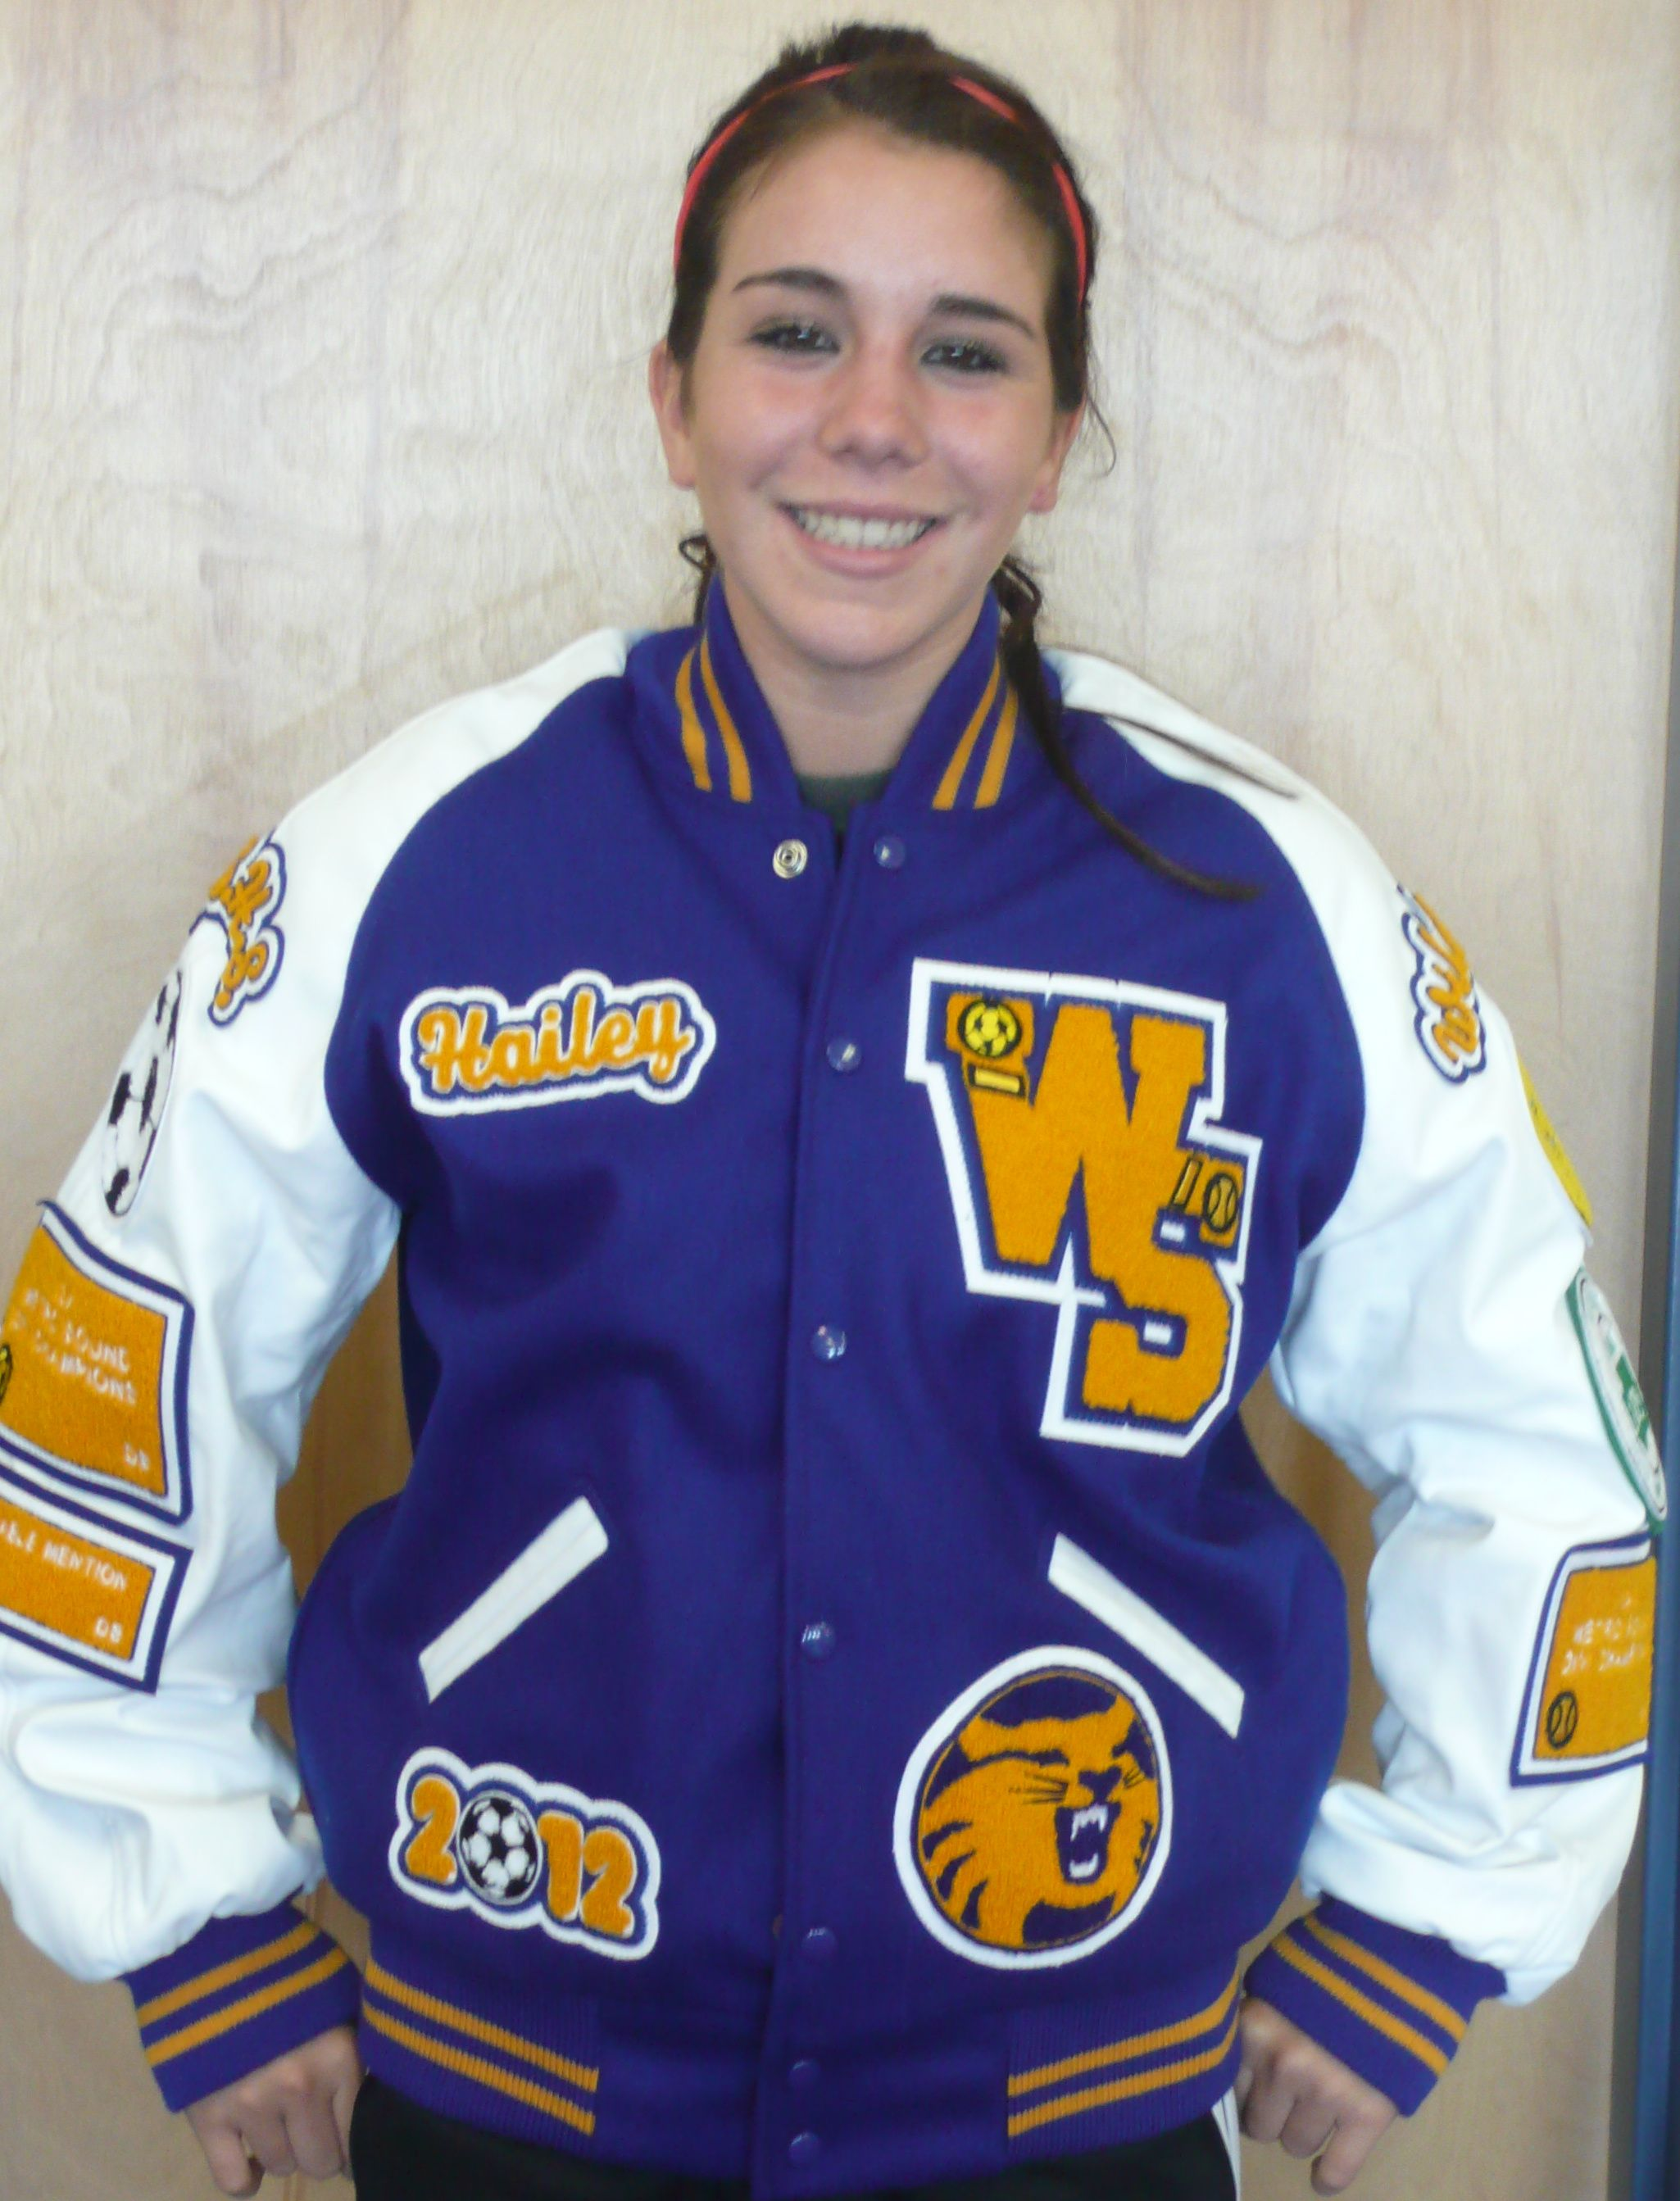 west seattle high school varsity letter jacket wwwnationalachievercom varsity